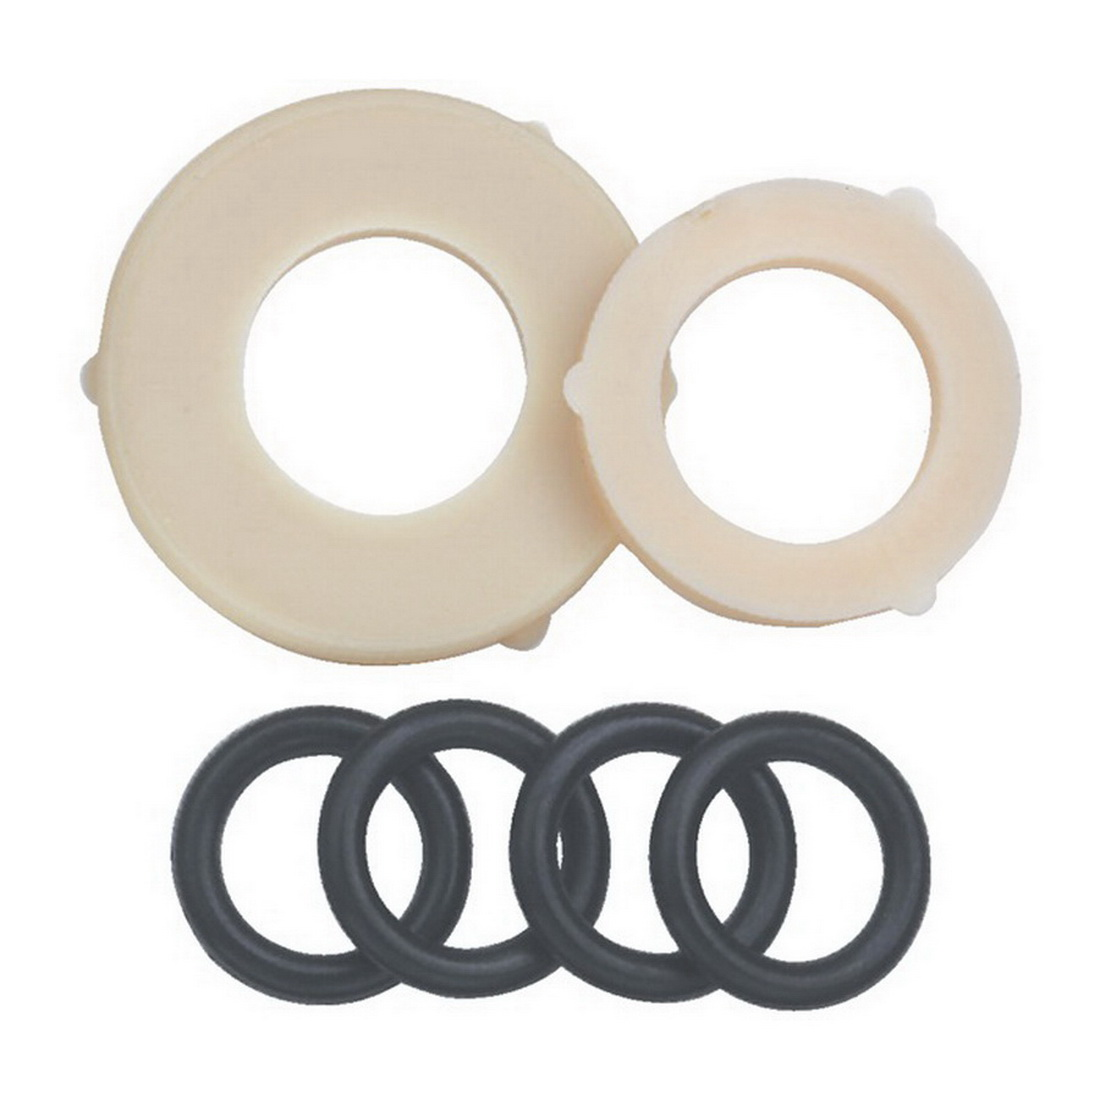 Replacement Washer Set 12mm Connection